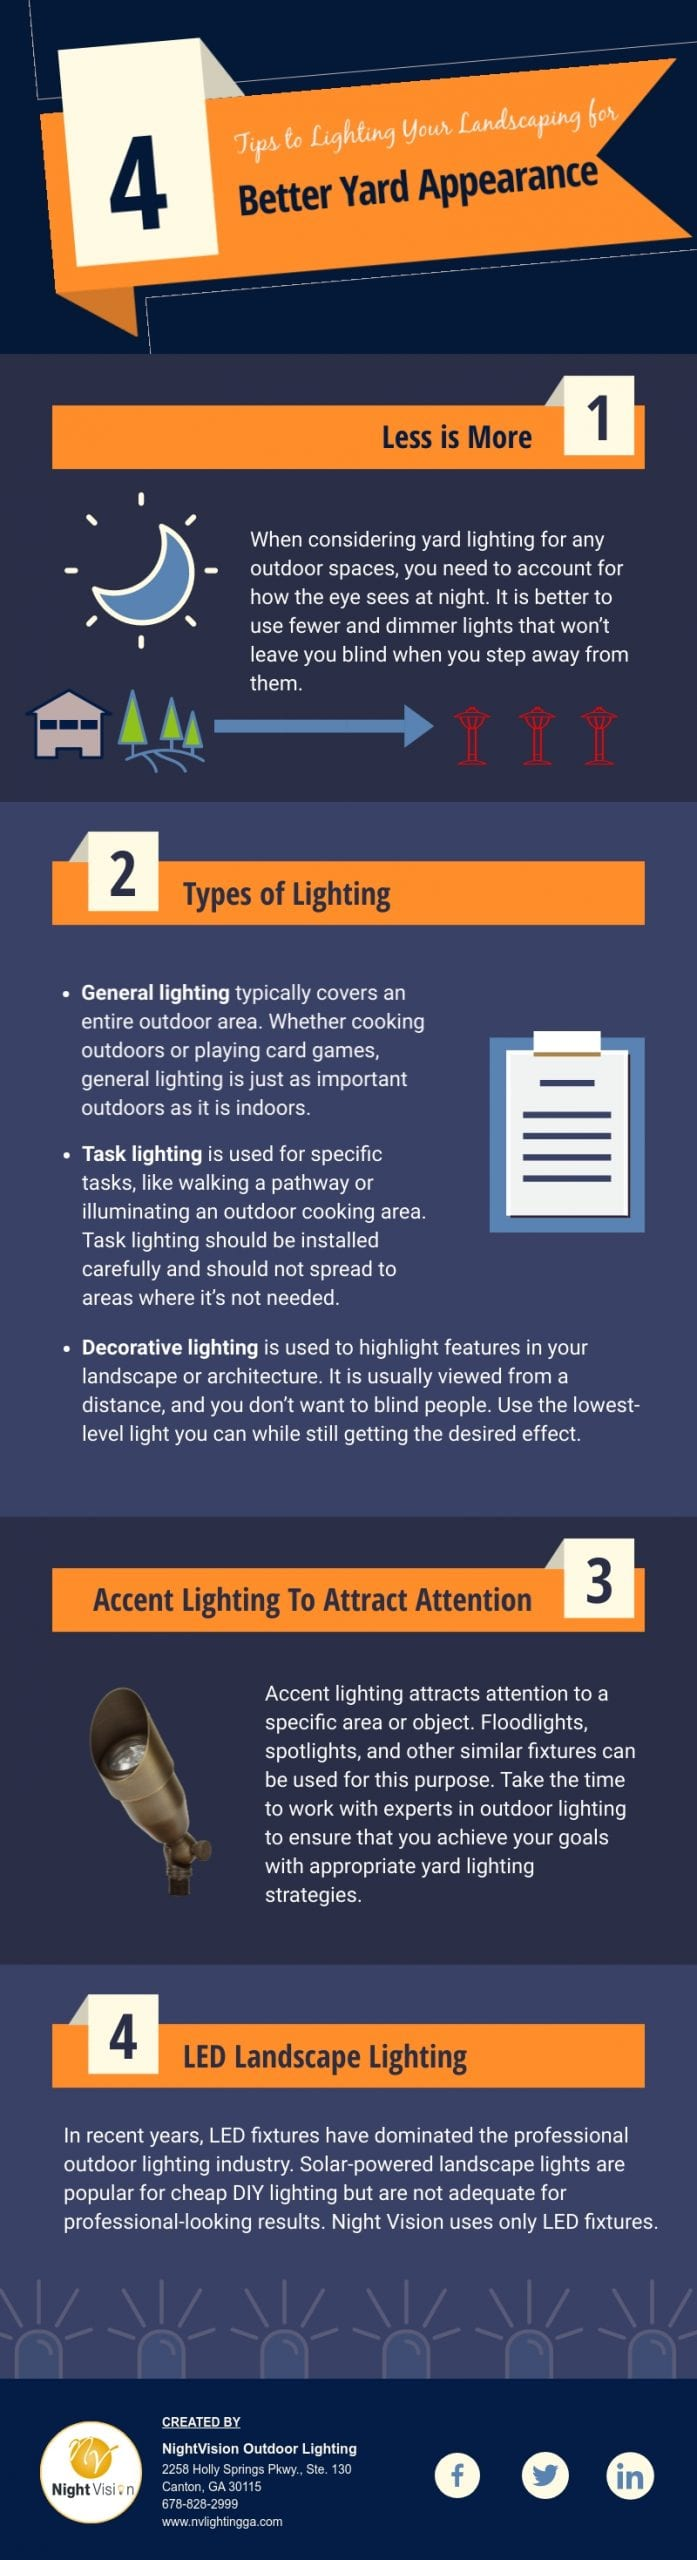 Lighting Your Landscaping For An Overall Better Yard Appearance [infographic]